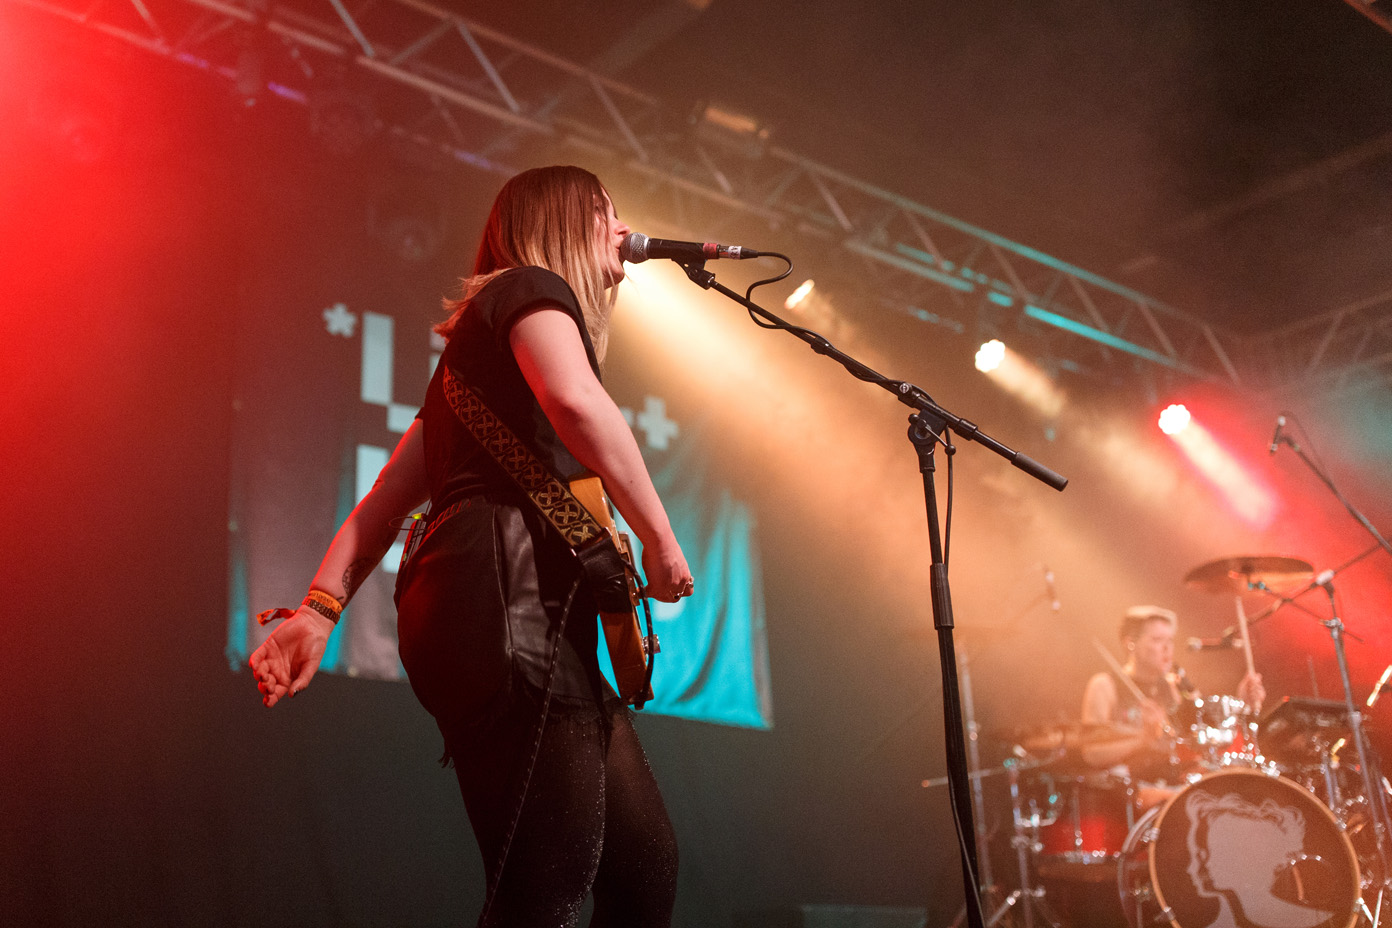 Honeyblood live on stage at Leeds University during Live at Leeds on 29 April 2017. Photo: Katy Blackwood